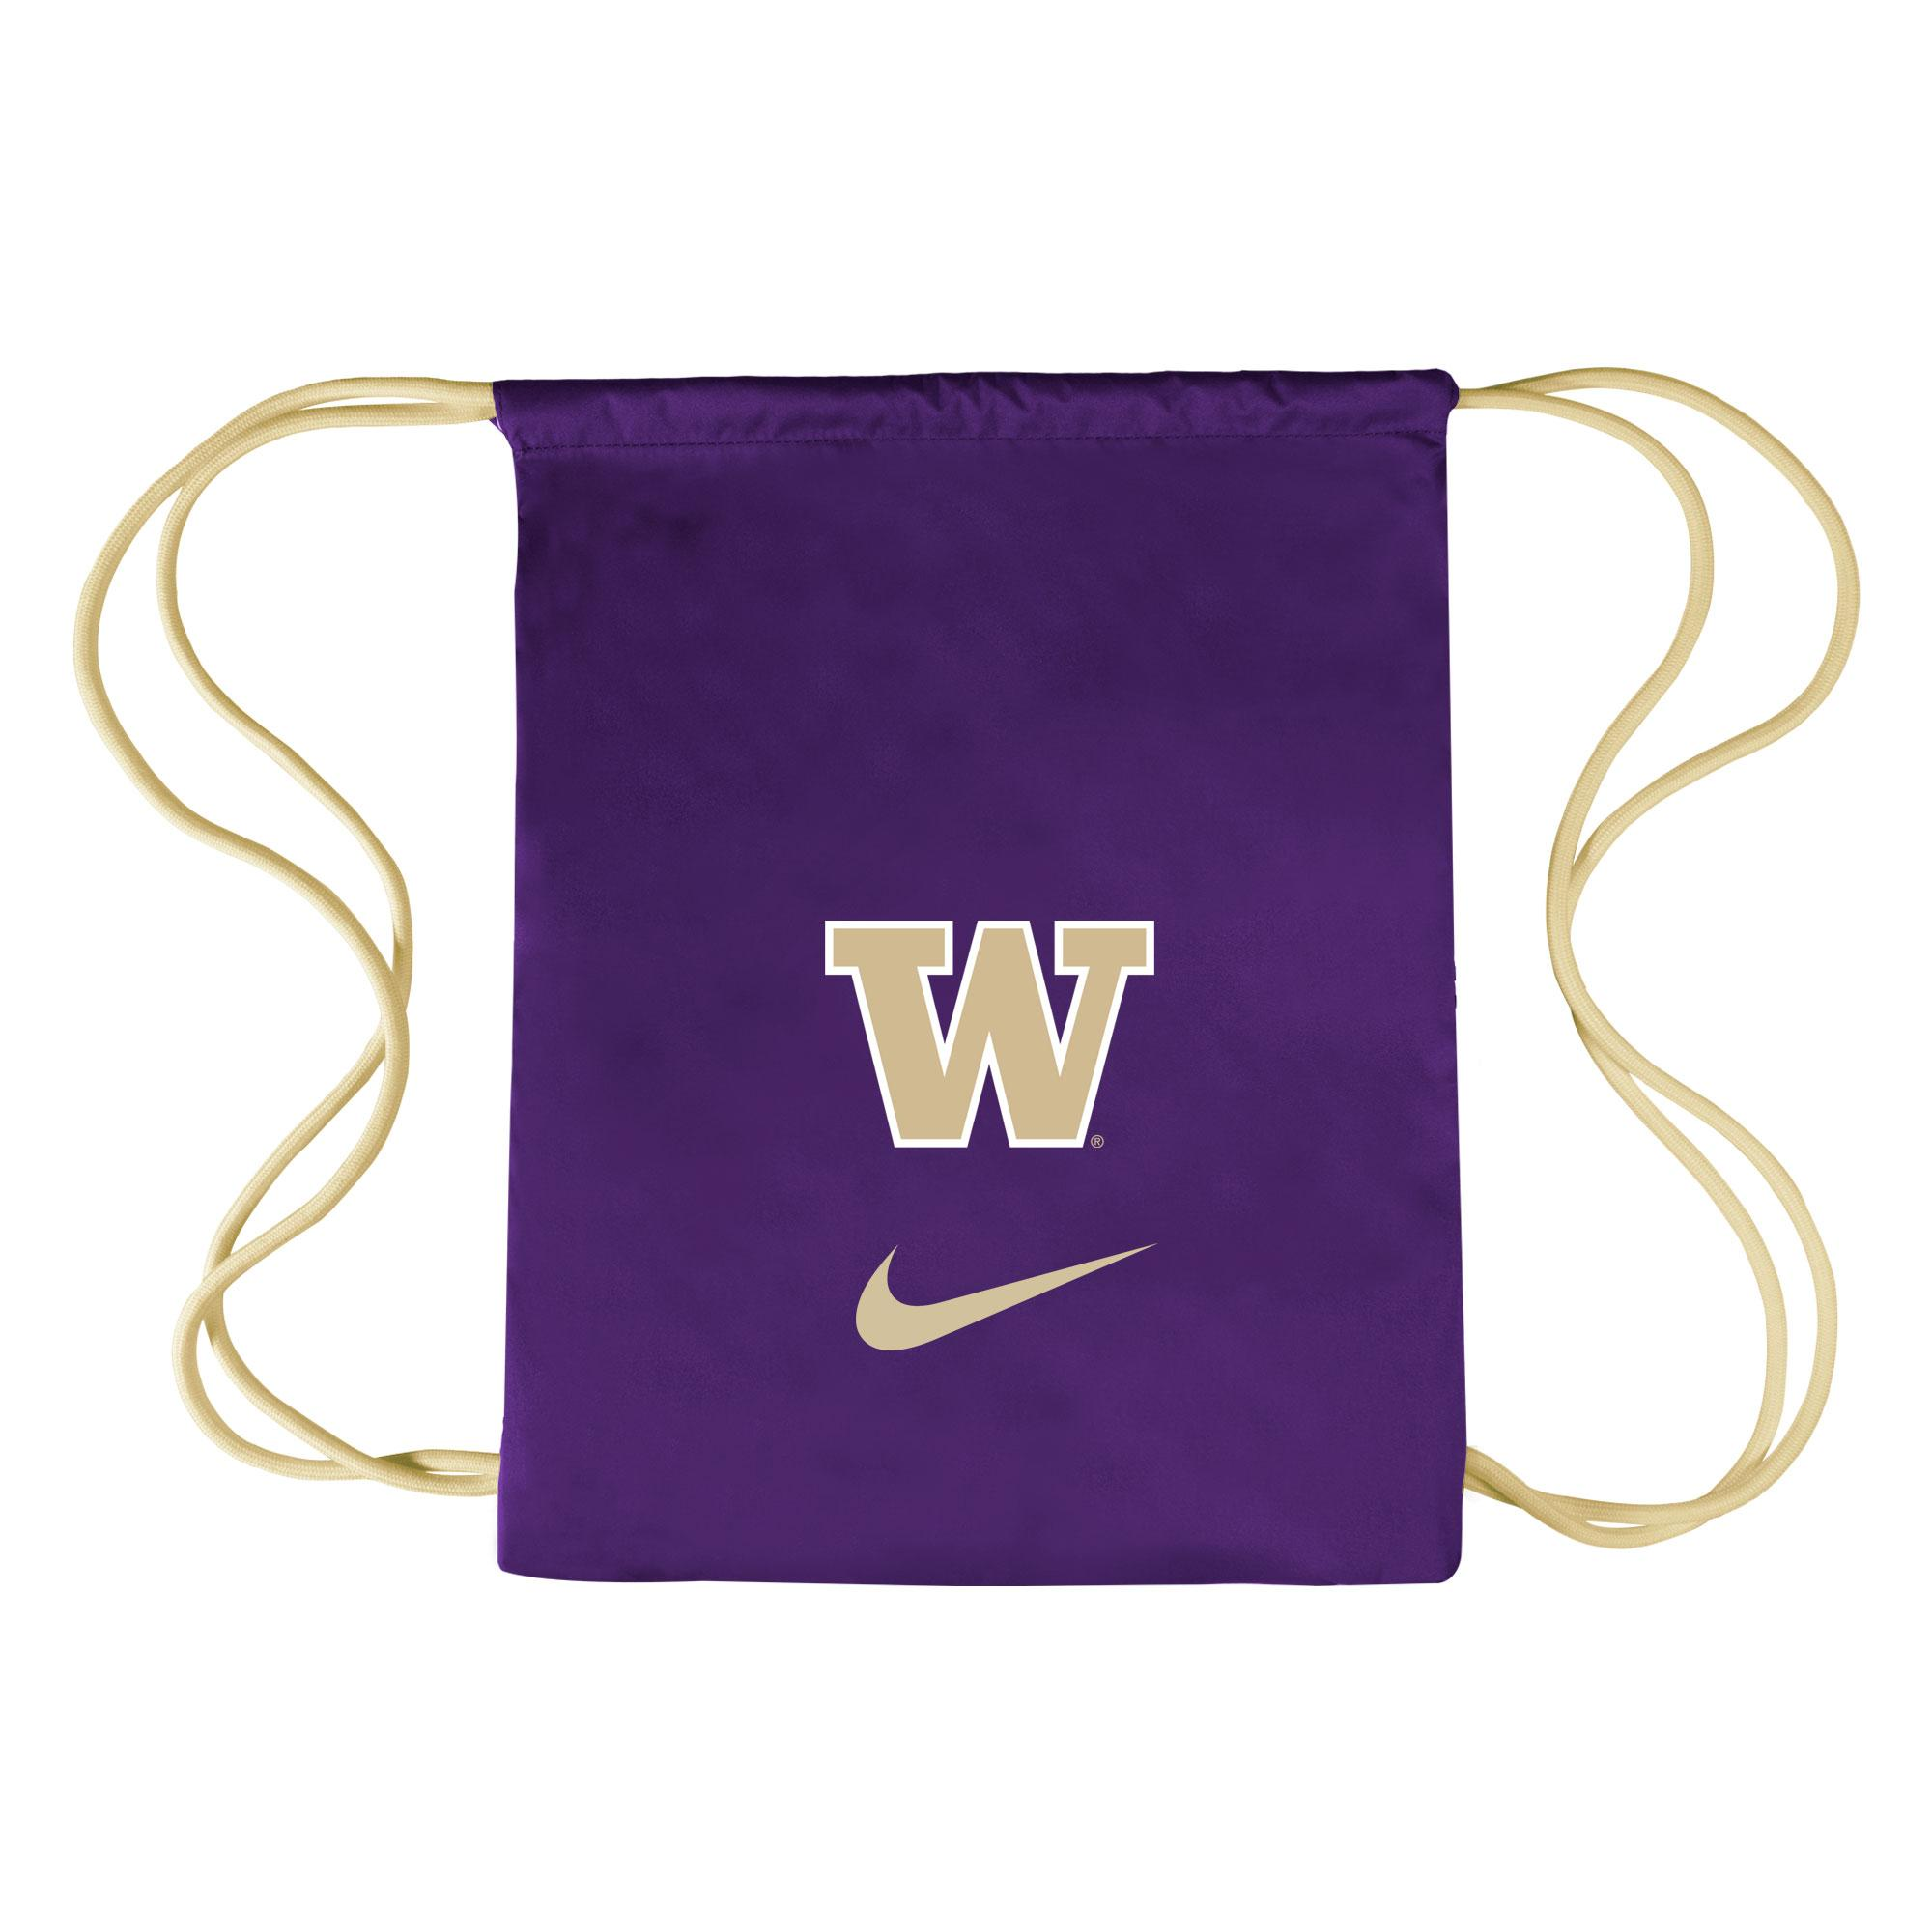 Nike Vapor Gym Bag Front. Nike Purple With Tan Straps W ... 7455887f348f6